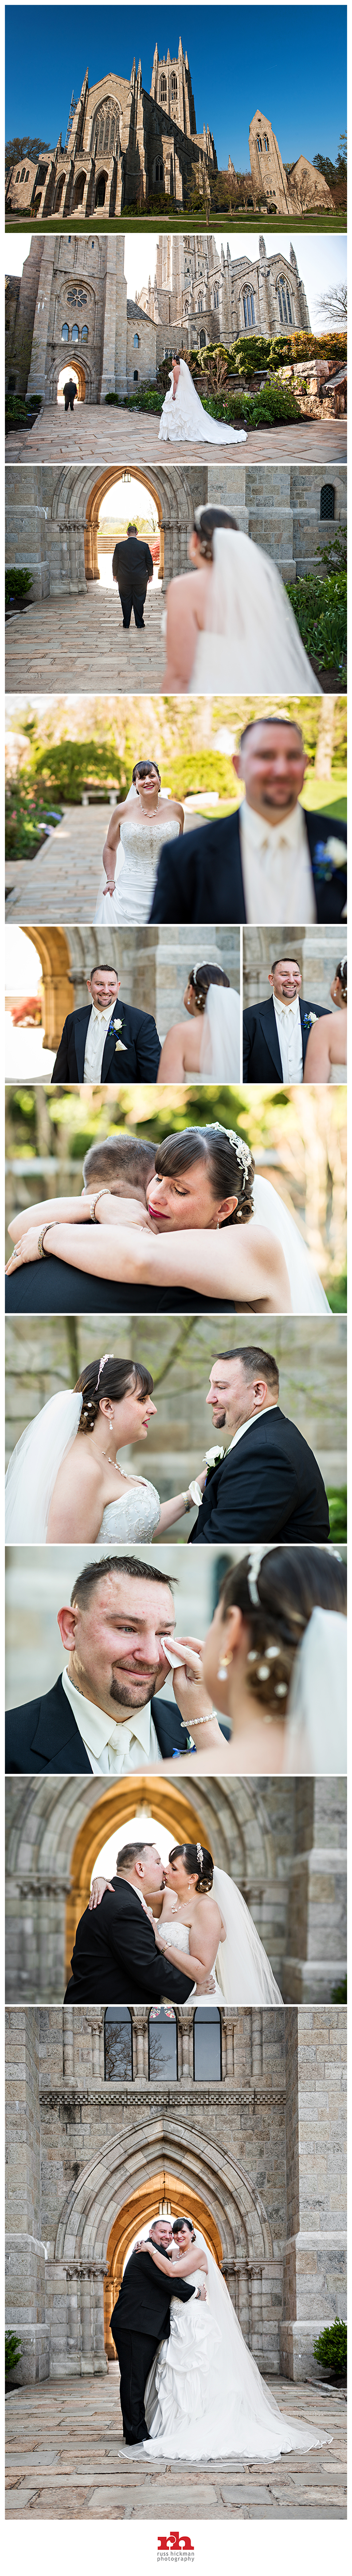 Philadelphia Wedding Photographer RTWB0003